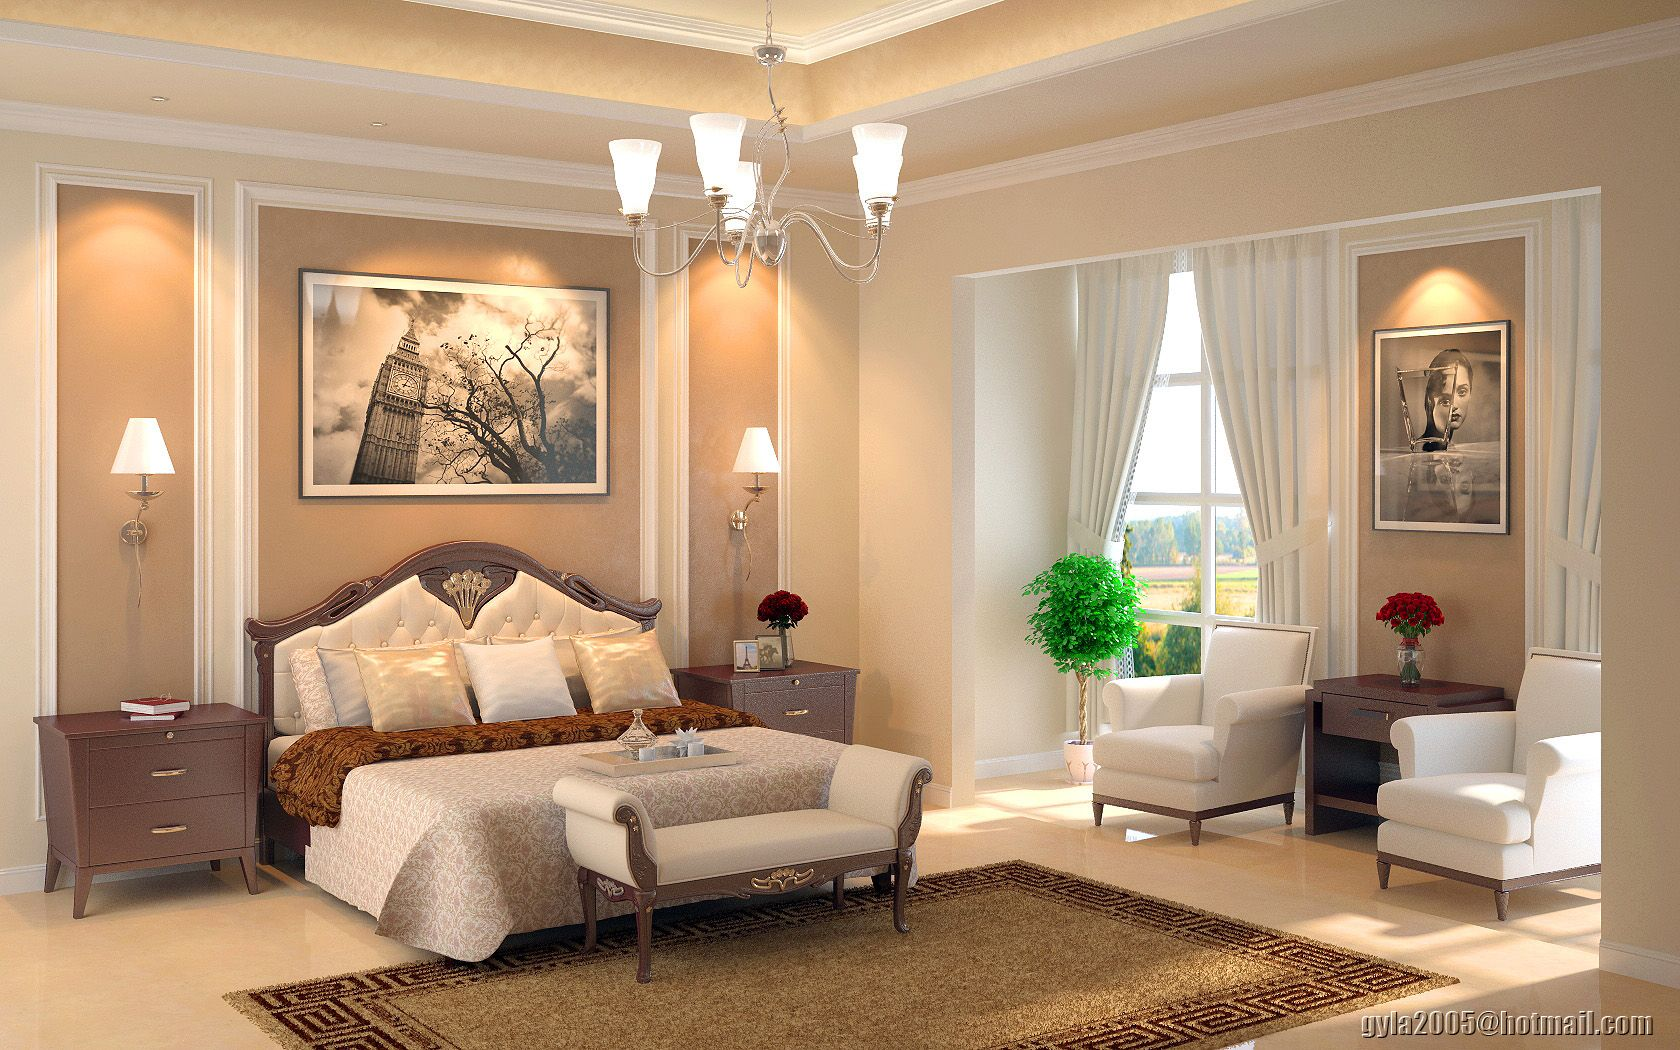 Master Bedroom Interior Design transitional interior design master suite bedroom | deviantart